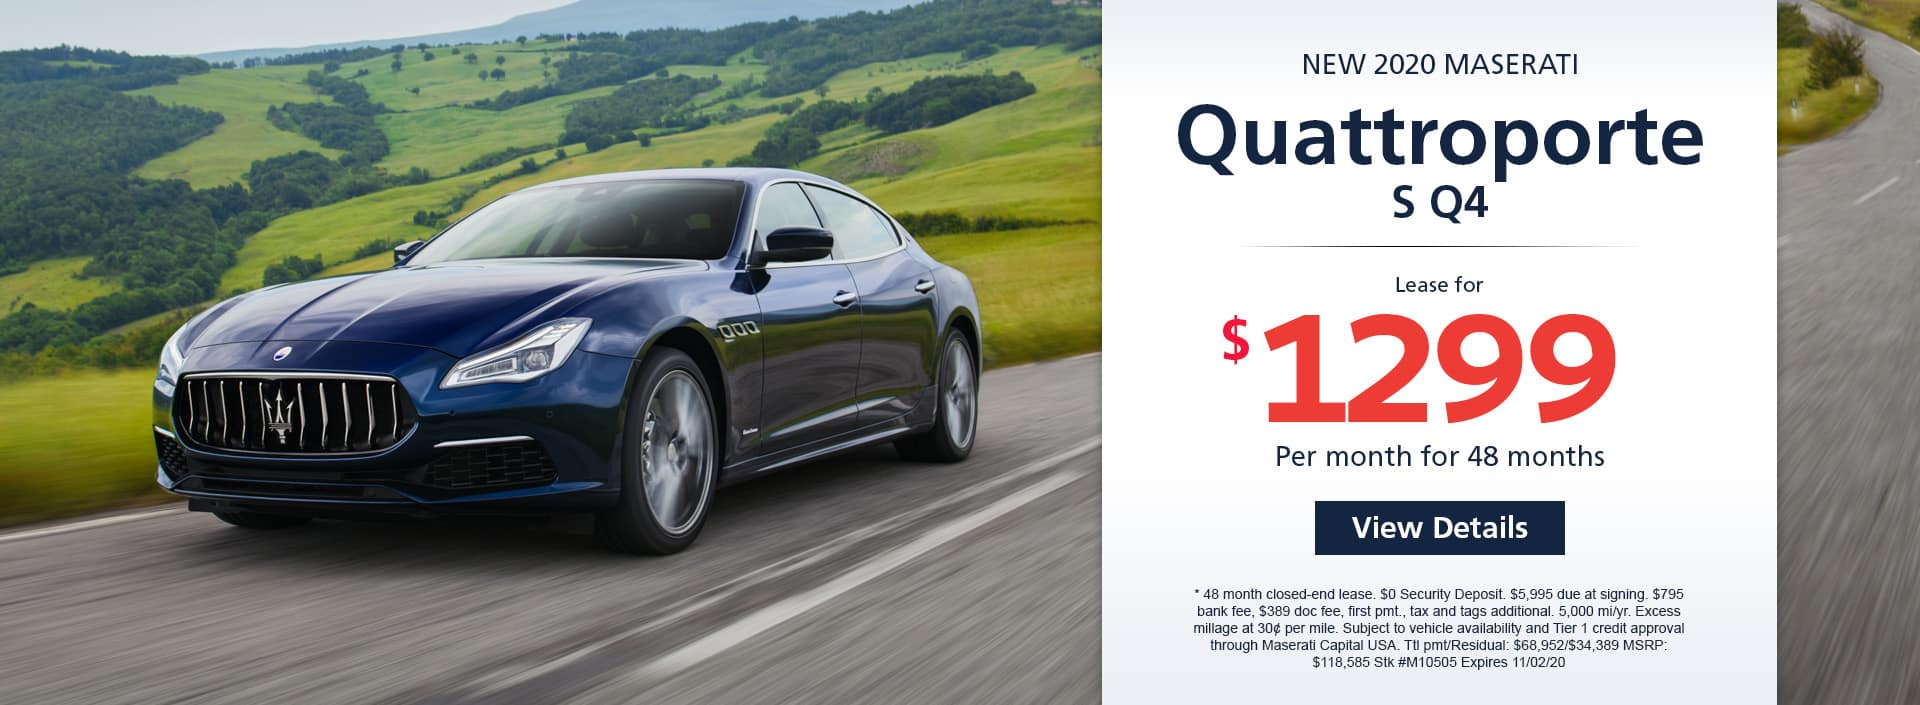 Lease a new 2020 Maserati Quattroporte S Q4 for $1,299 a month for 48 months. Or get special 0% APR financing for up to months or 0% APR financing up to months